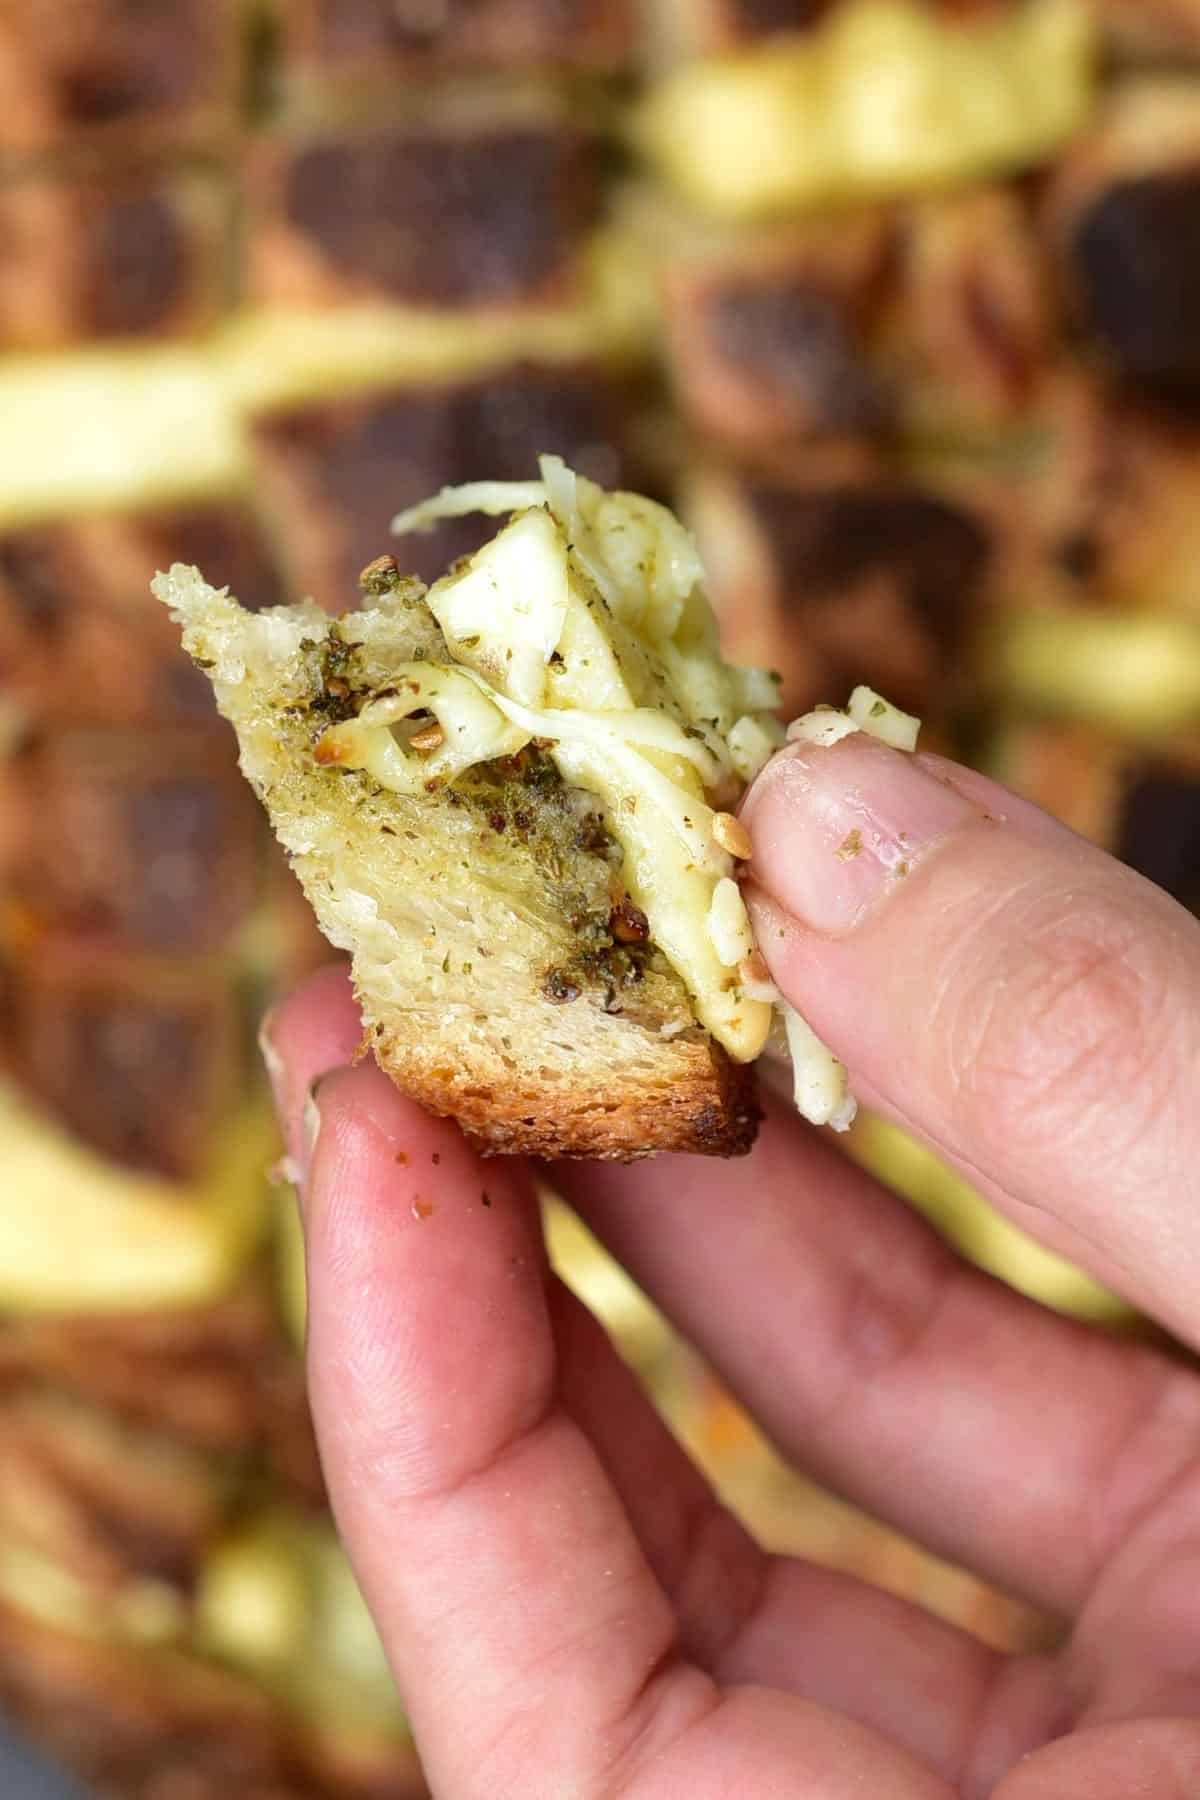 A hand holding a piece of pull-apart bread stuffed with cheese